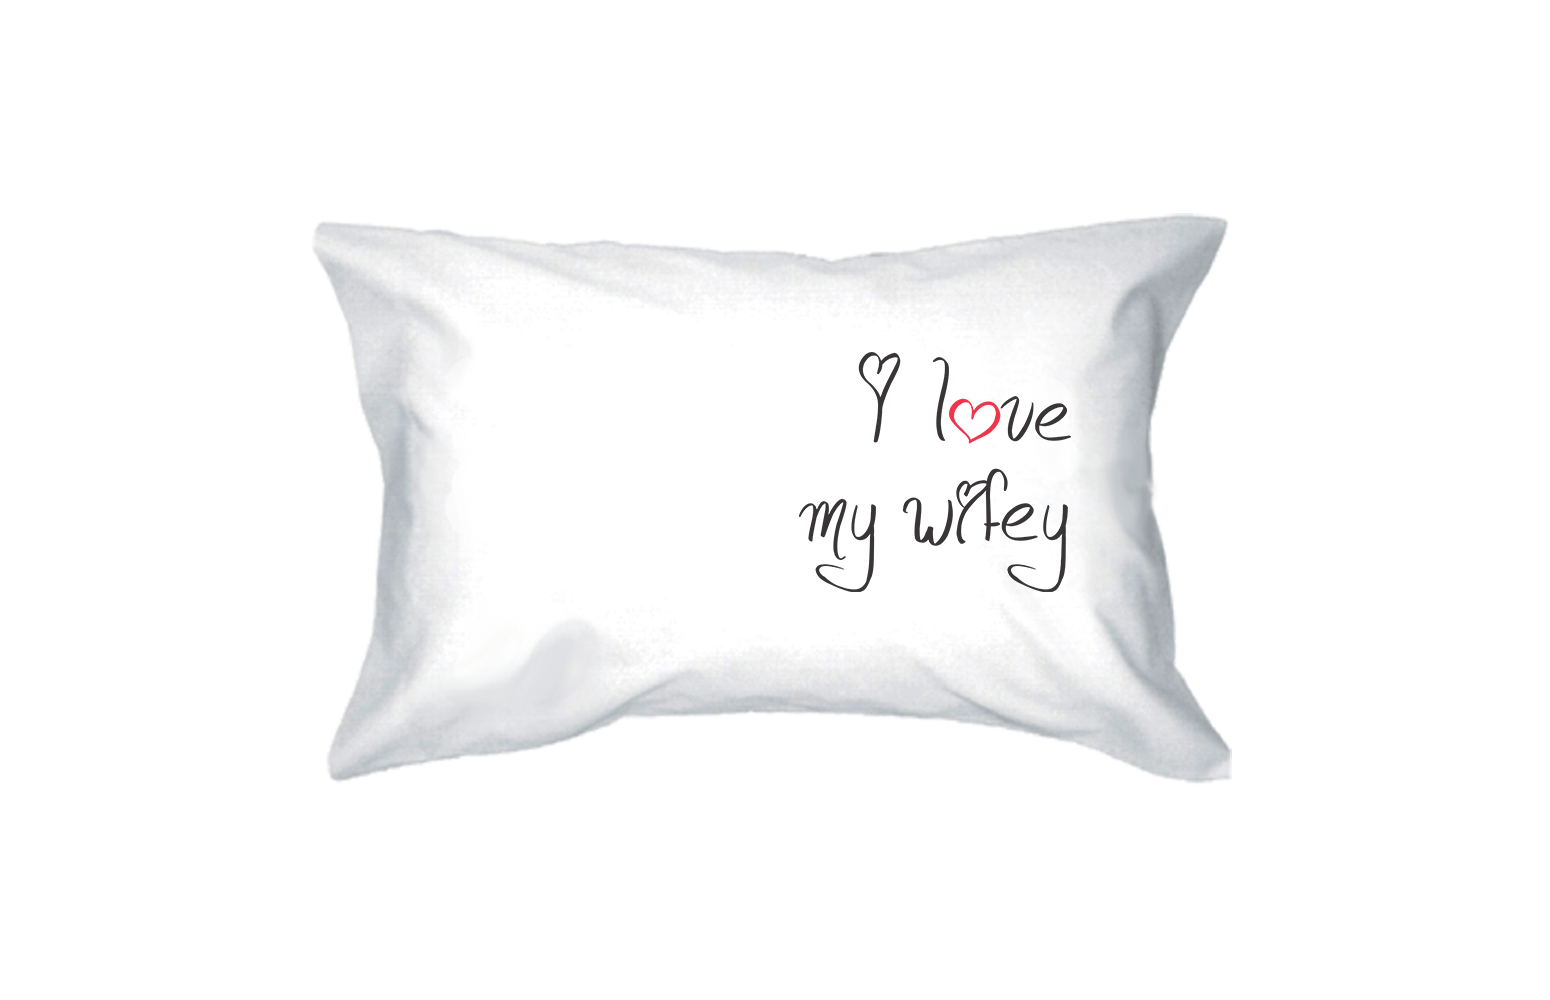 Good Morning My Handsome Man: Good Morning Handsome And Beautiful Couple Pillowcase Set